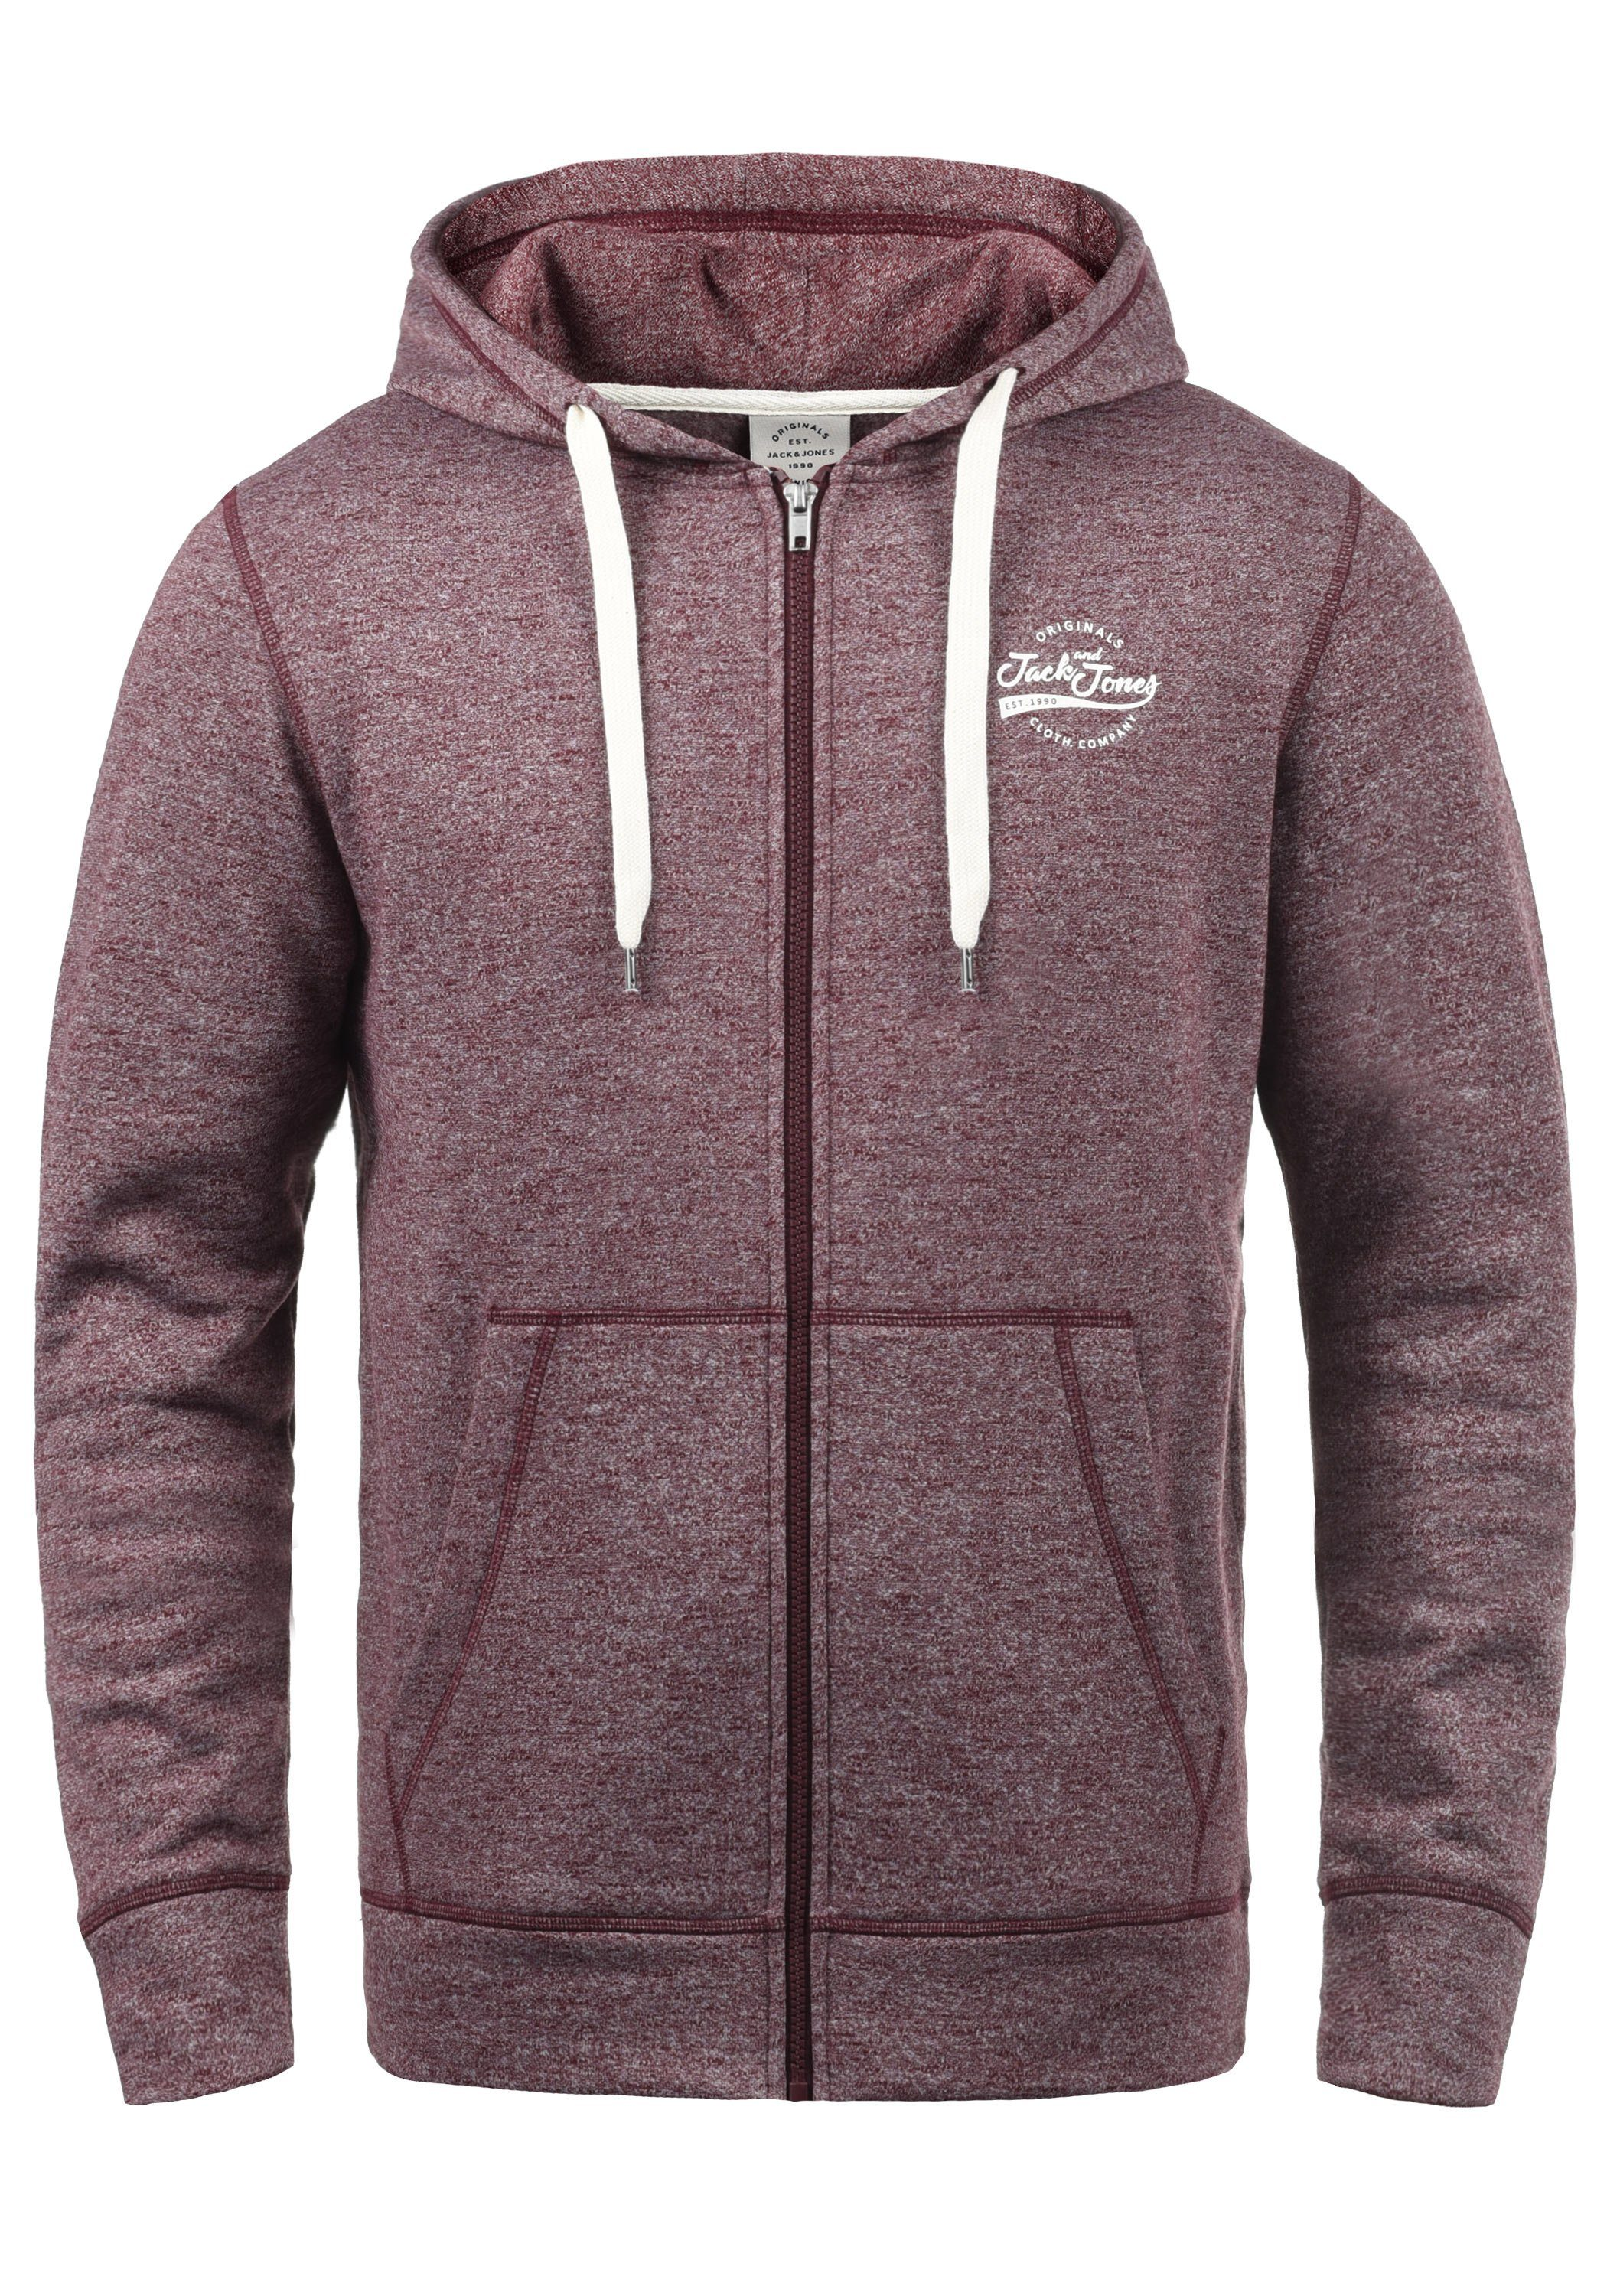 Jack & Jones Kapuzensweatjacke »Lucas« | Bekleidung > Sweatshirts & -jacken > Sweatjacken | Braun | Fleece | JACK & JONES